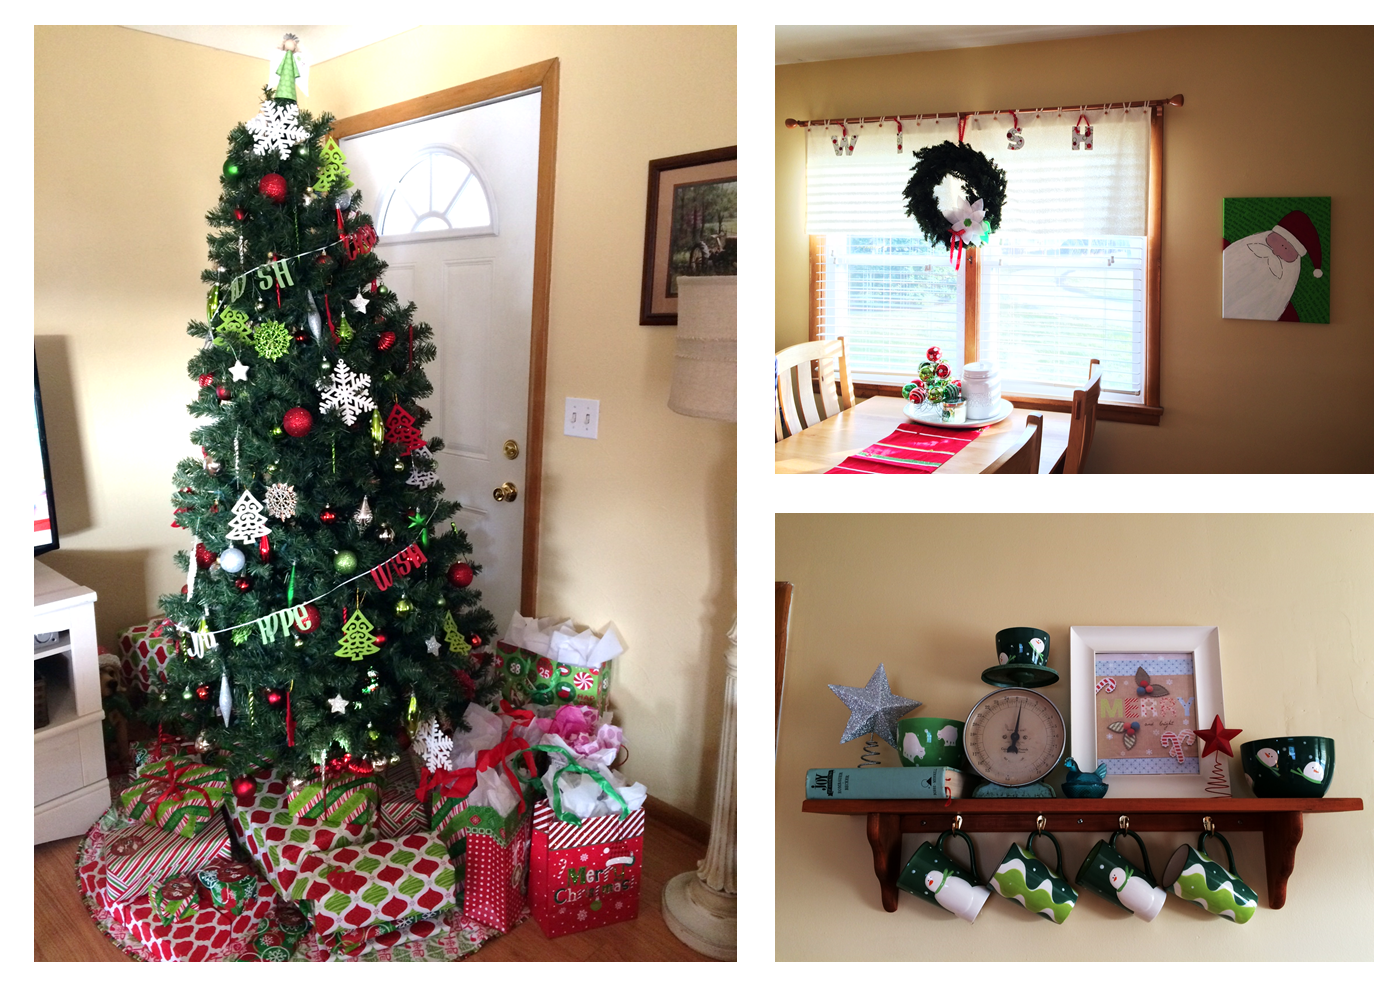 2 elf or no elf no elf for me i dont have any kids of my own so theres no reason for me to have one at home